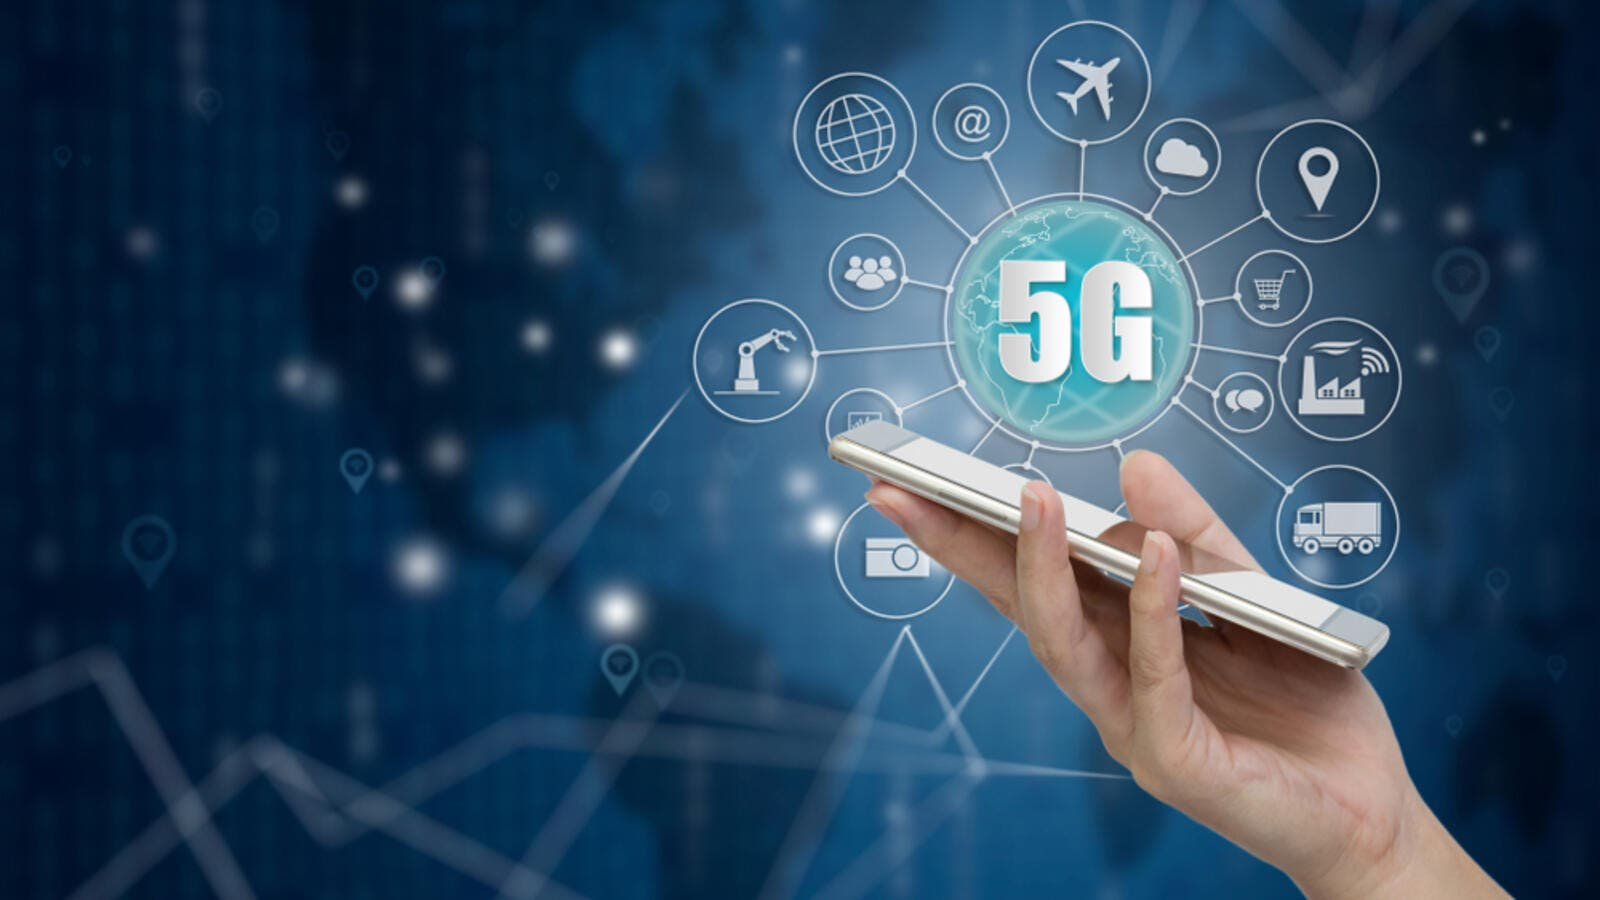 5G is also a key component for emerging technologies, such as the Internet of Things, autonomous vehicles and machine-to-machine communication.